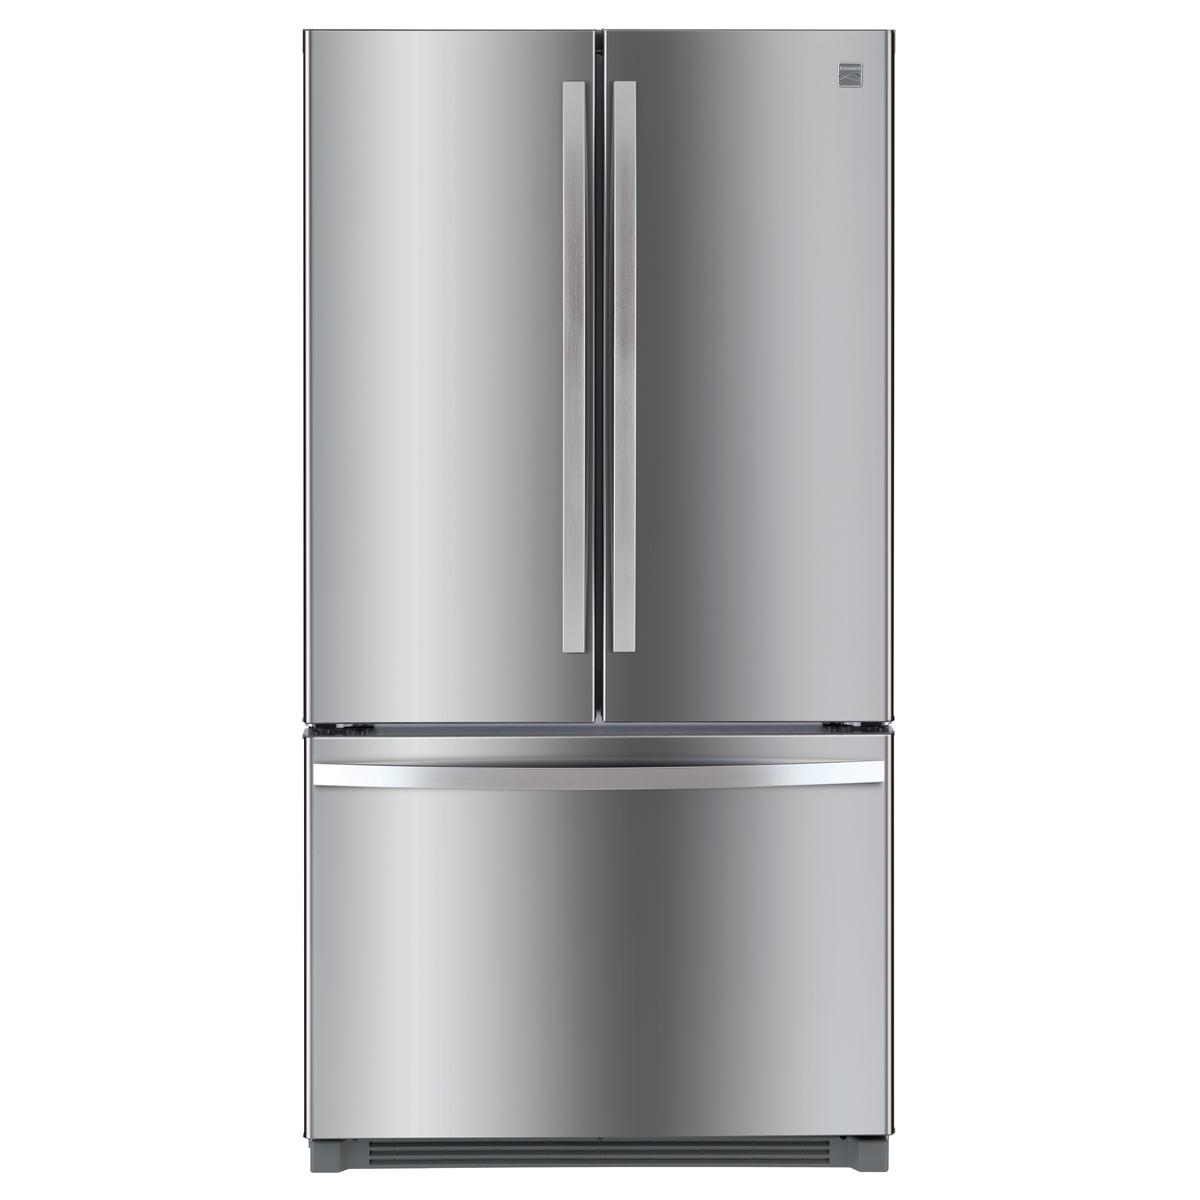 Kenmore 73025 26.1 cu. ft. French Door Refrigerator with Ice Maker